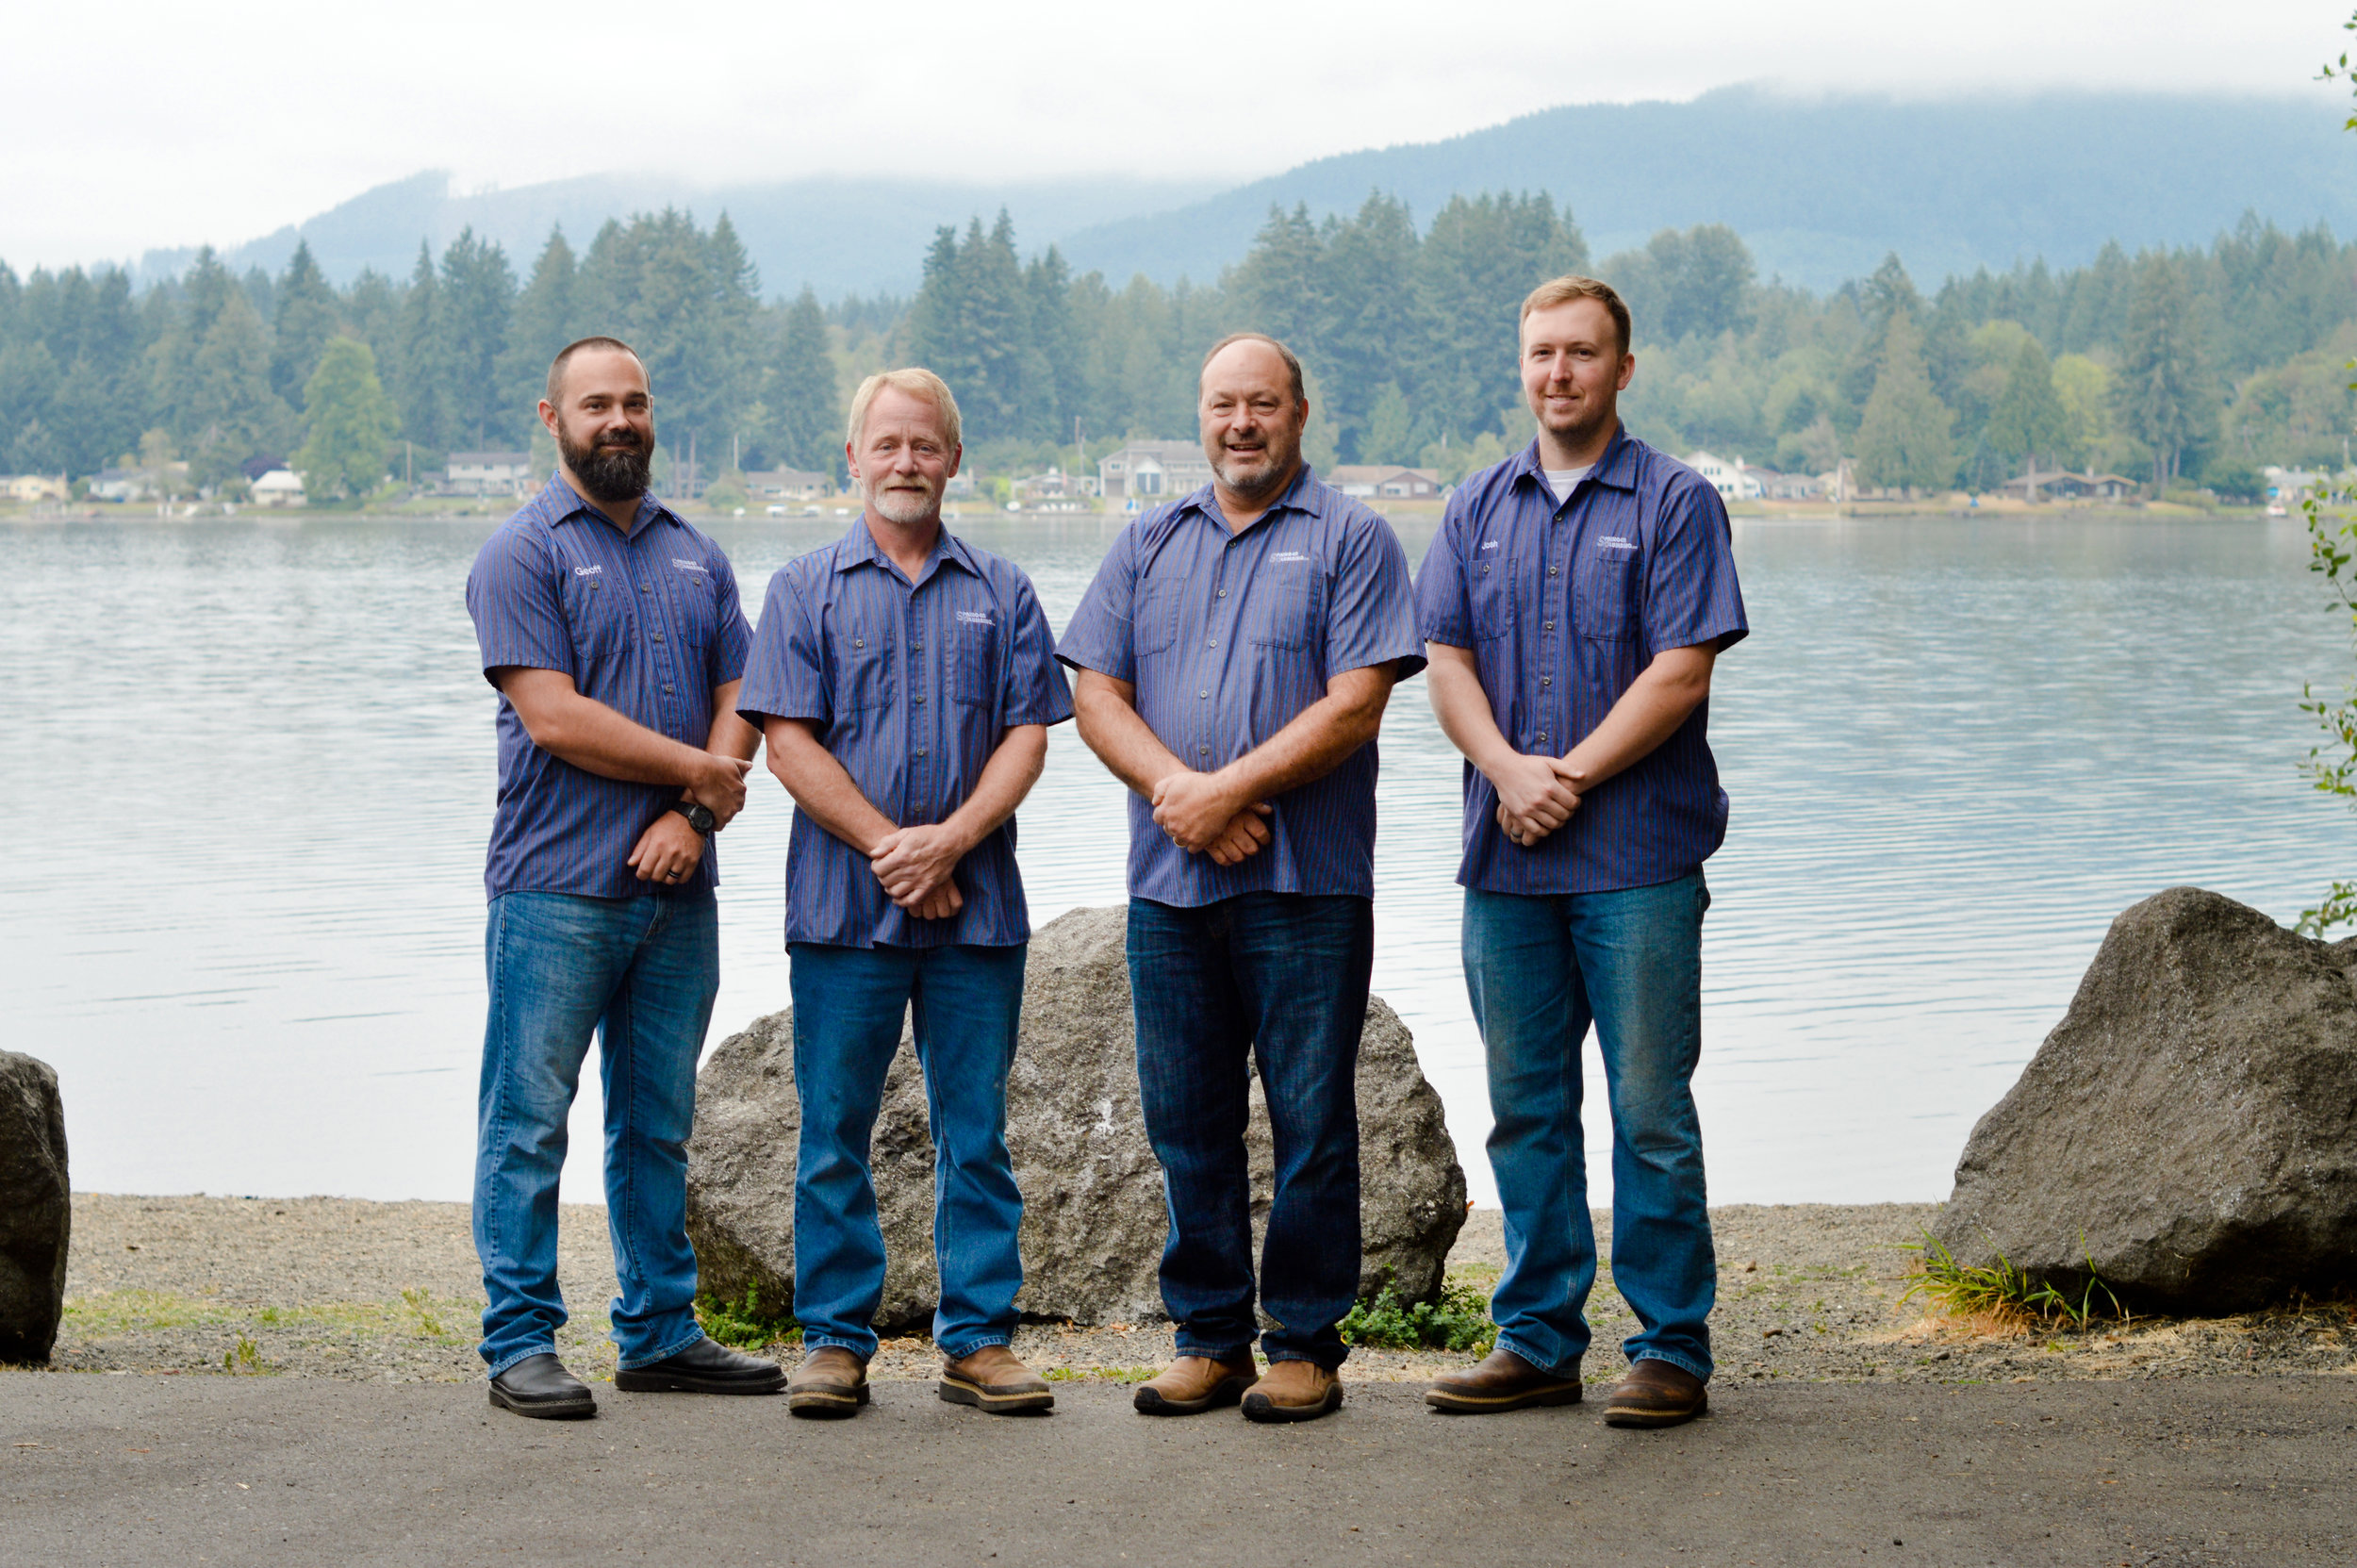 Our technicians can ensure your plumbing system is working optimally year-round.